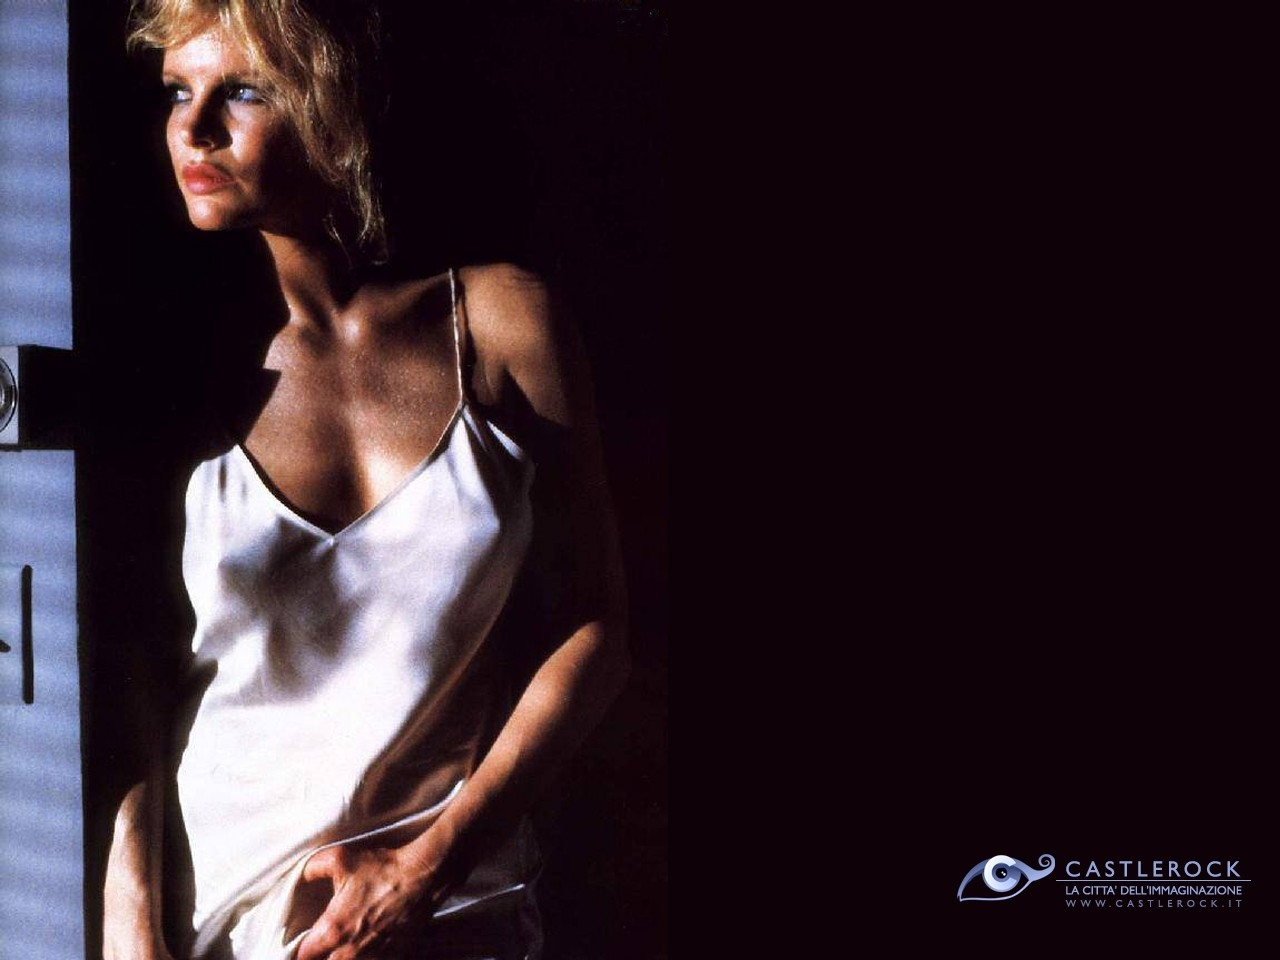 Wallpaper di Kim Basinger